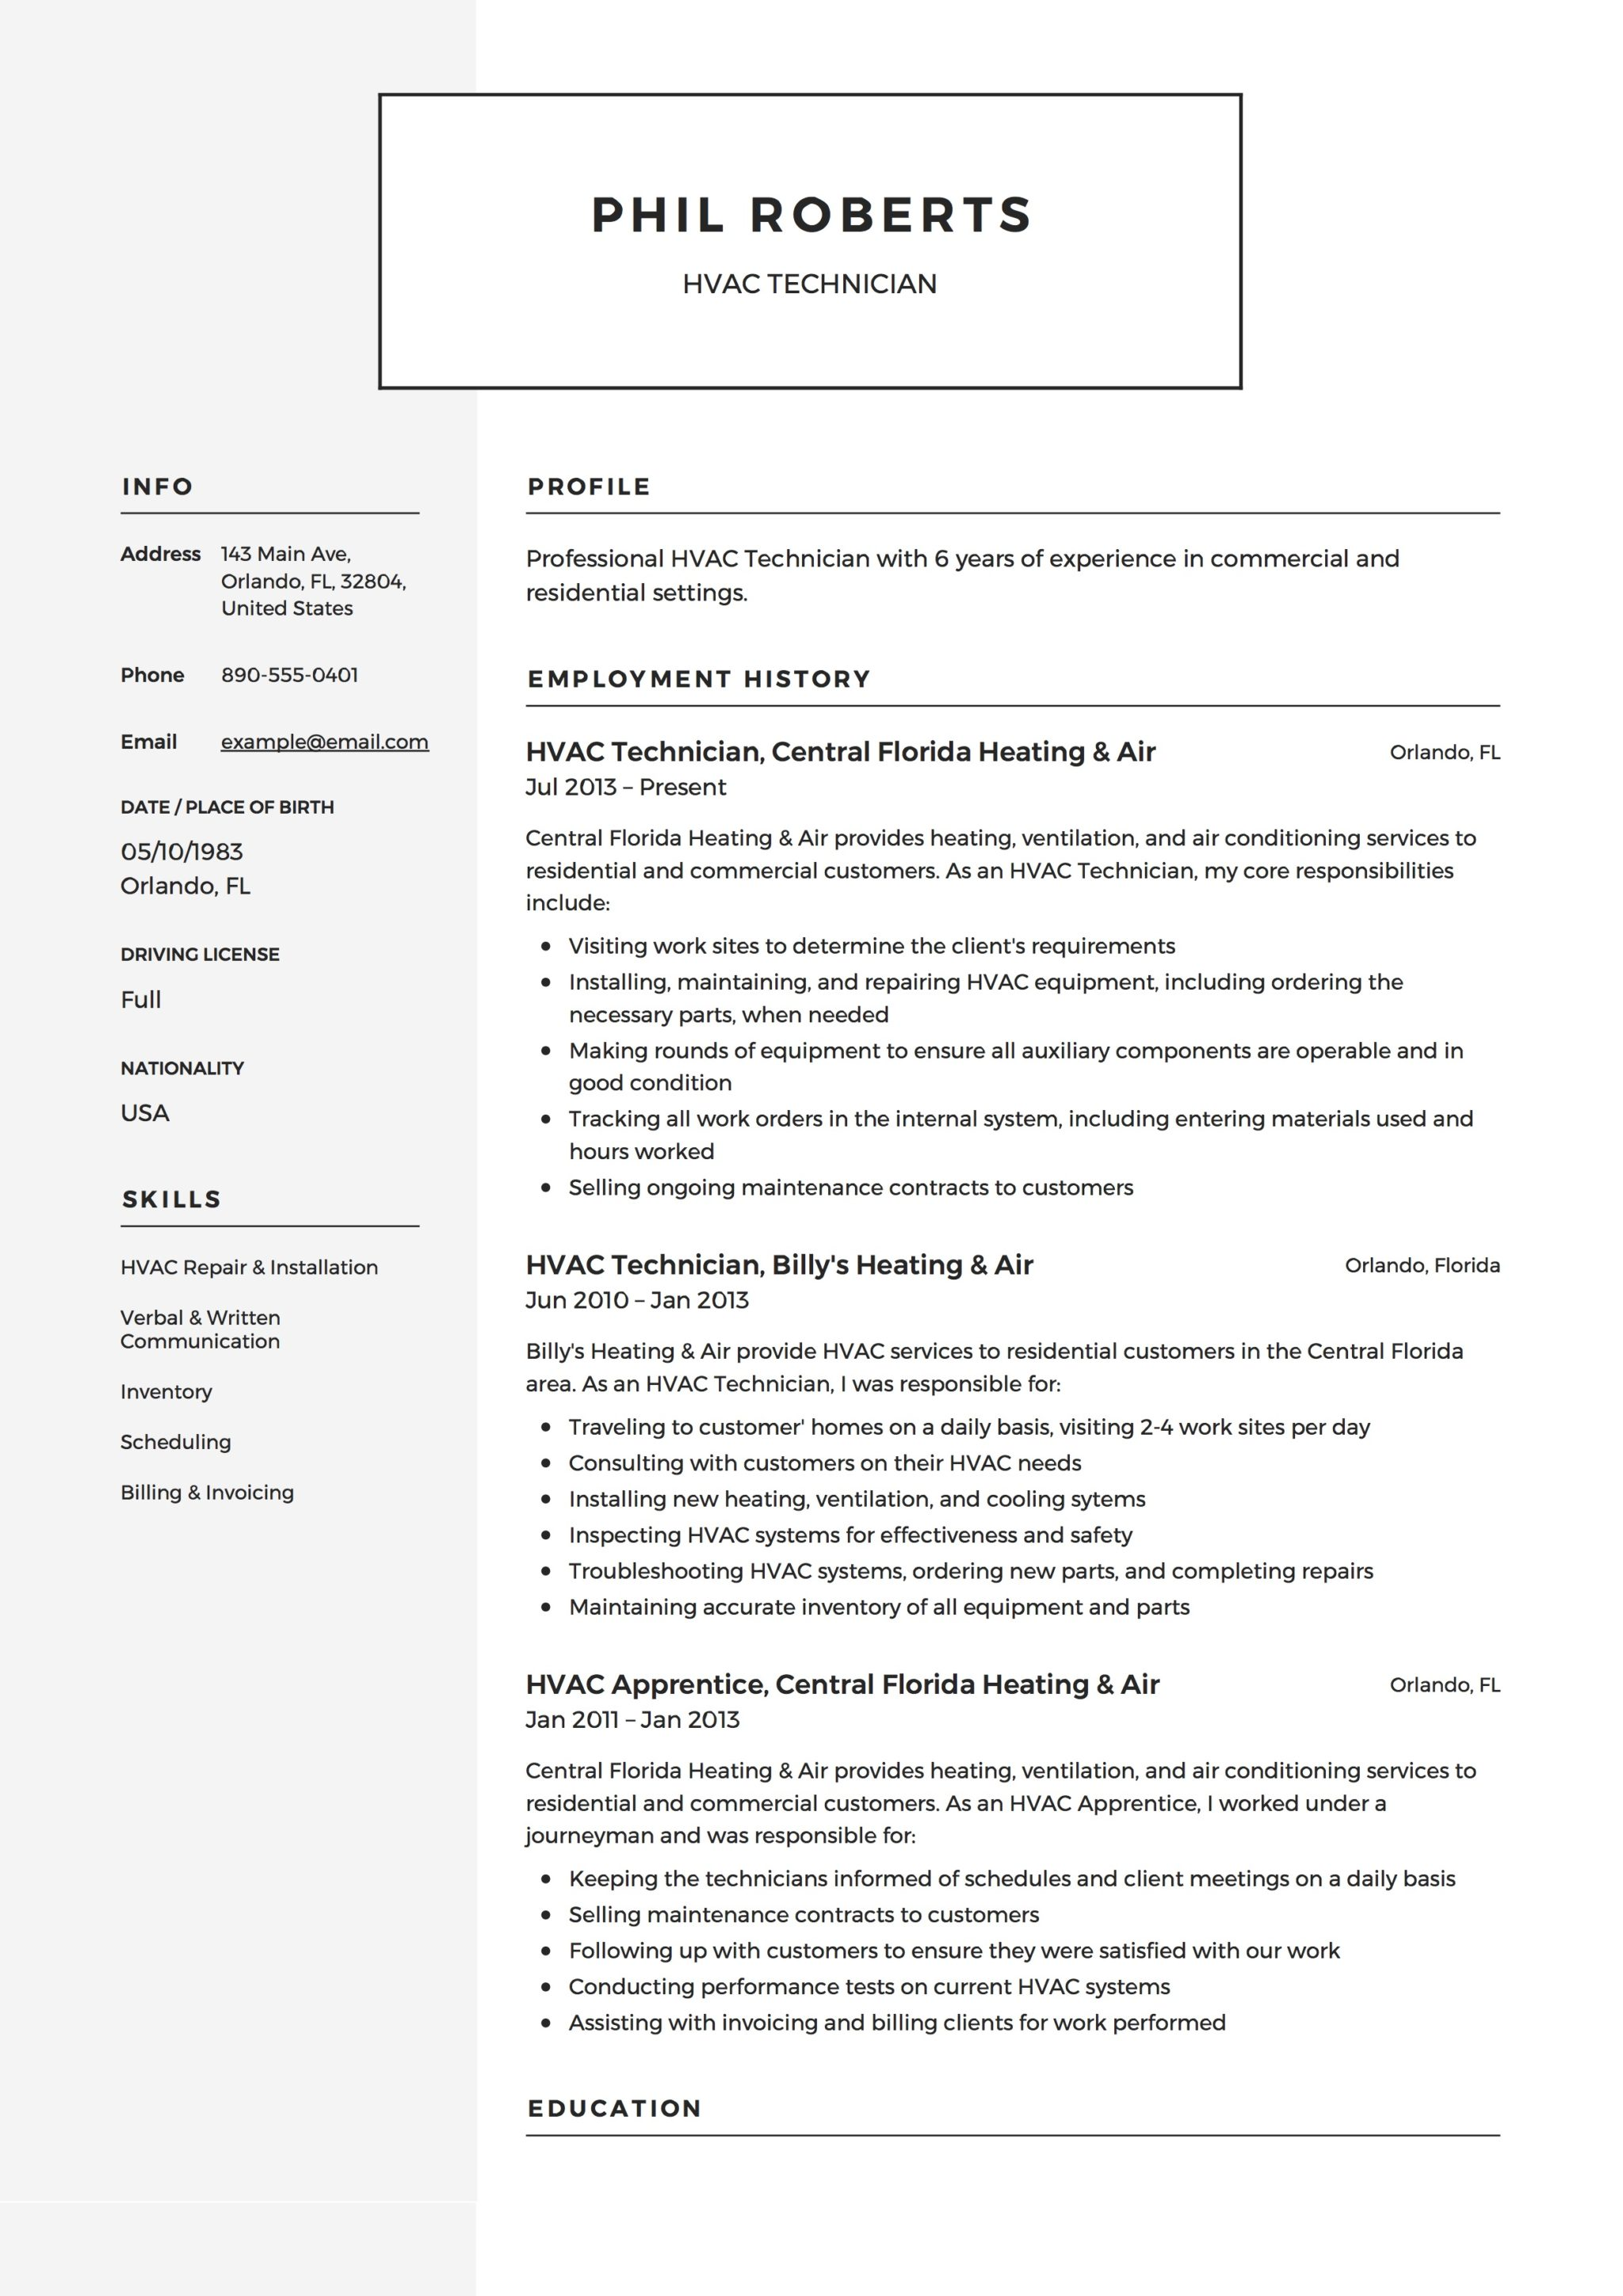 hvac technician resume example hvac technician resume examples - Hvac Technician Resume Examples